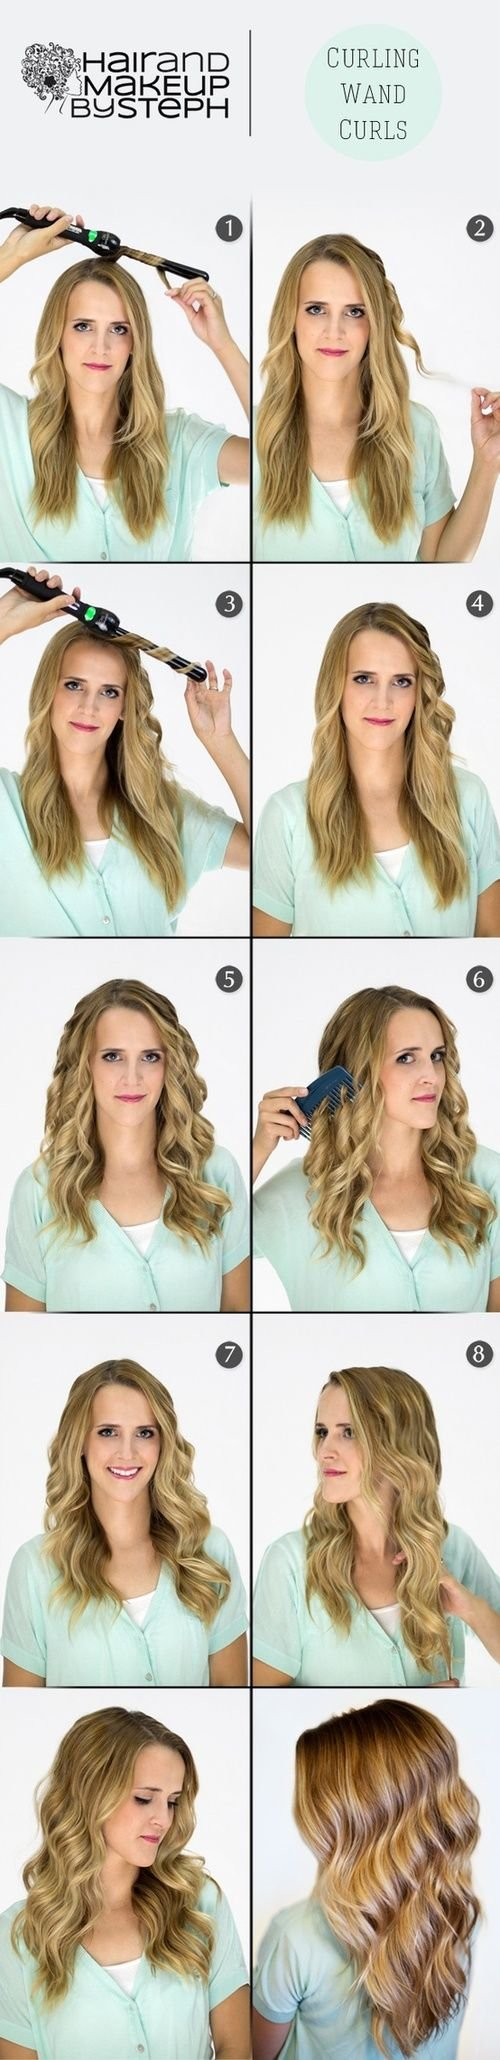 Free 1000 Ideas About Curling Wand Curls On Pinterest Easy Wallpaper